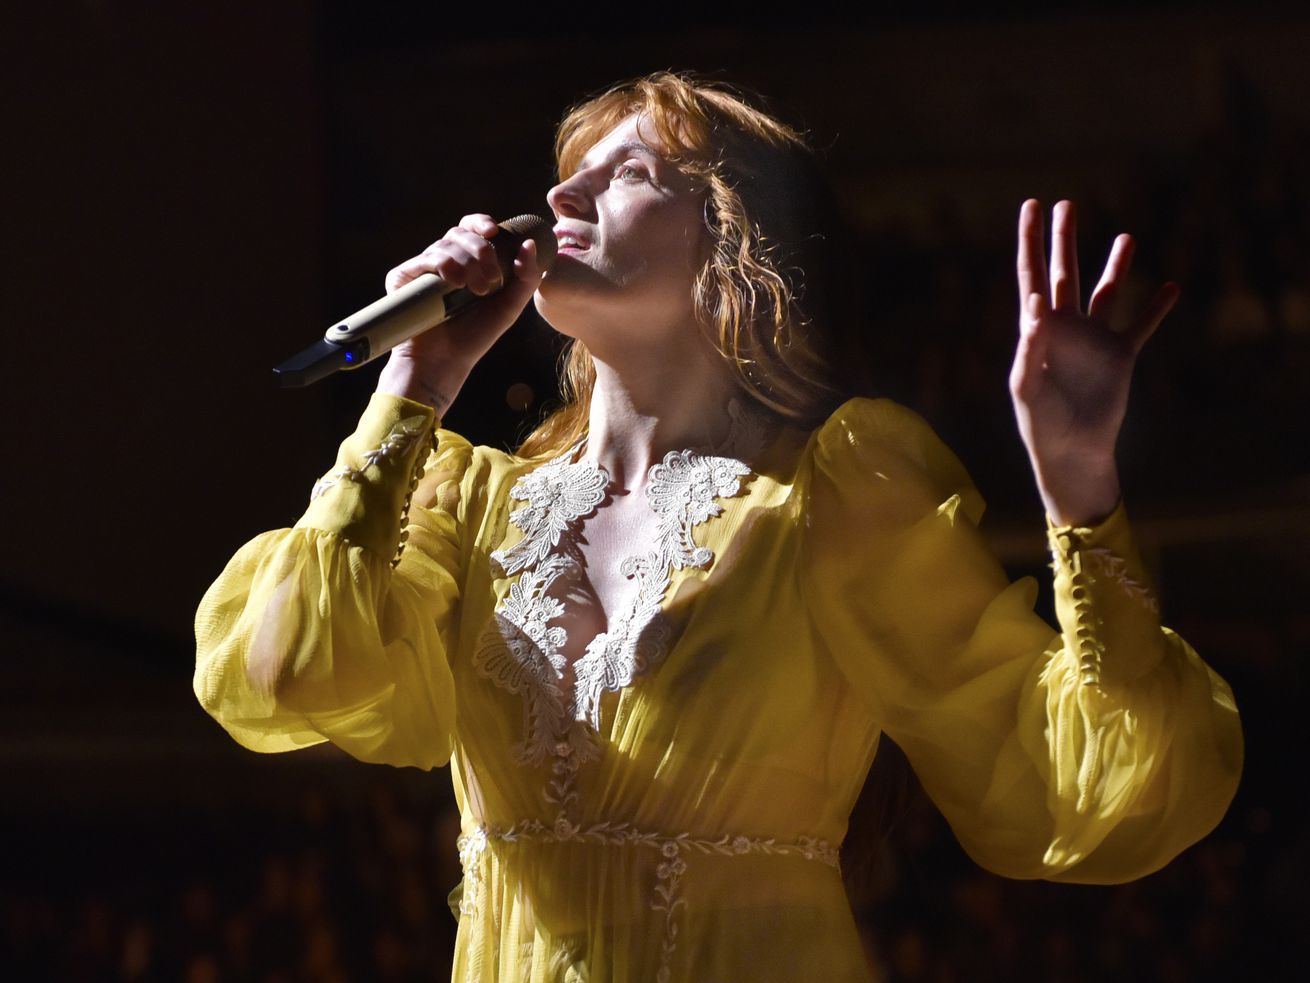 Florence Welch of Florence + The Machine performs during the High As Hope Tour in Chicago in 2018.